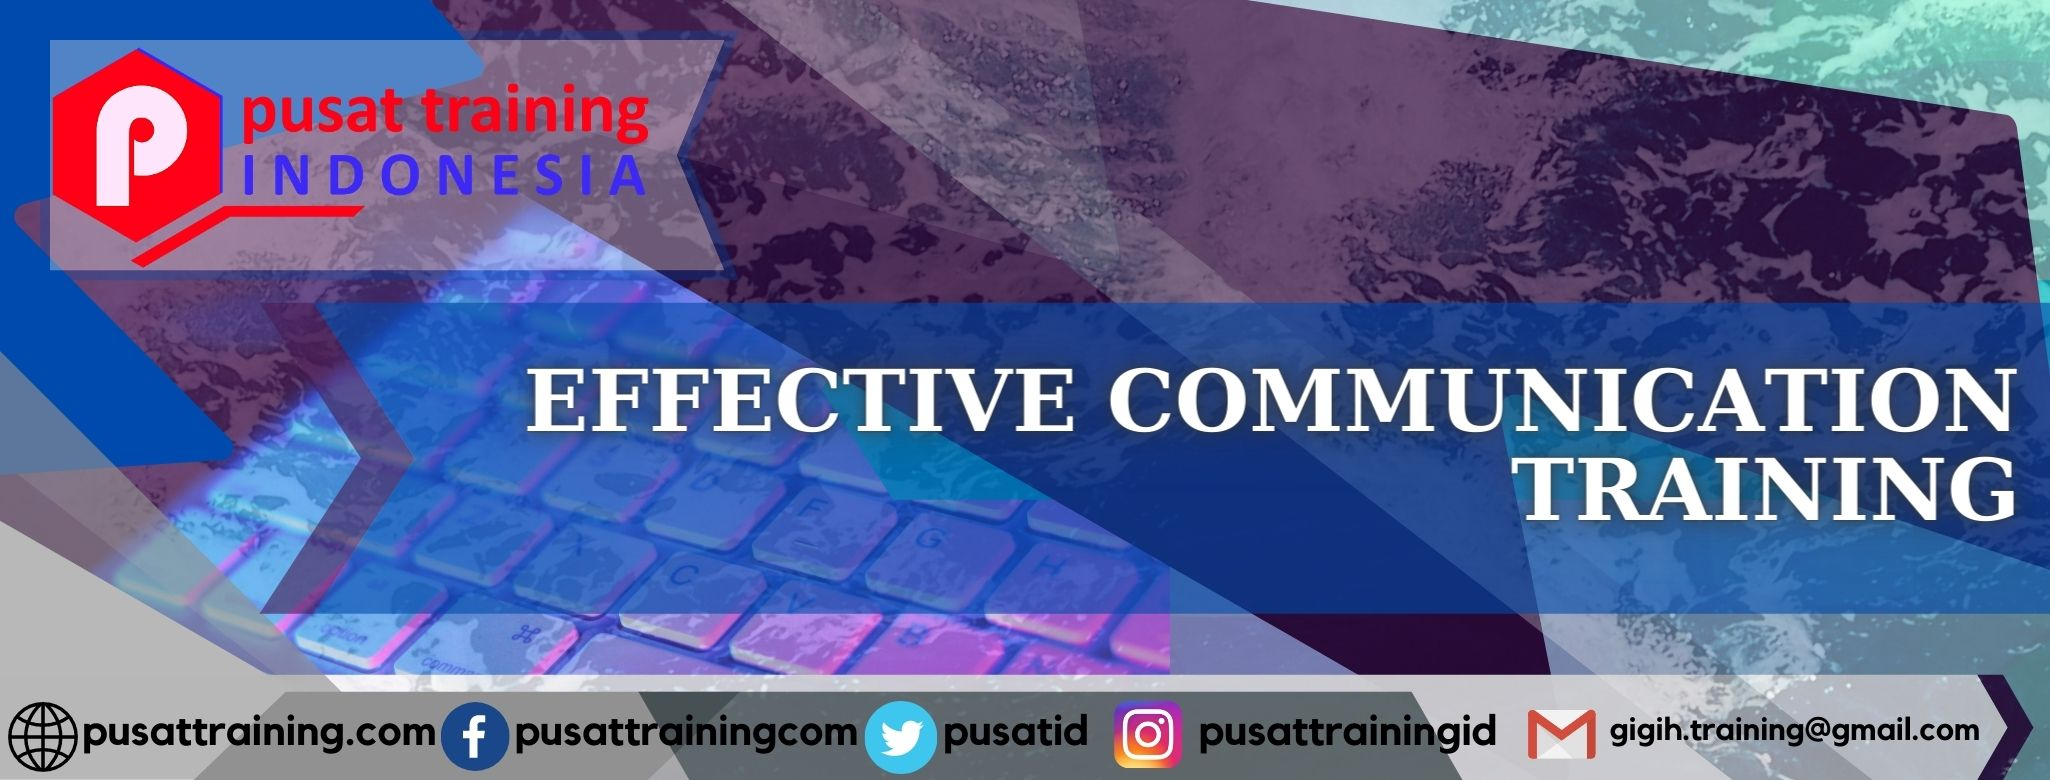 effective-communication-training